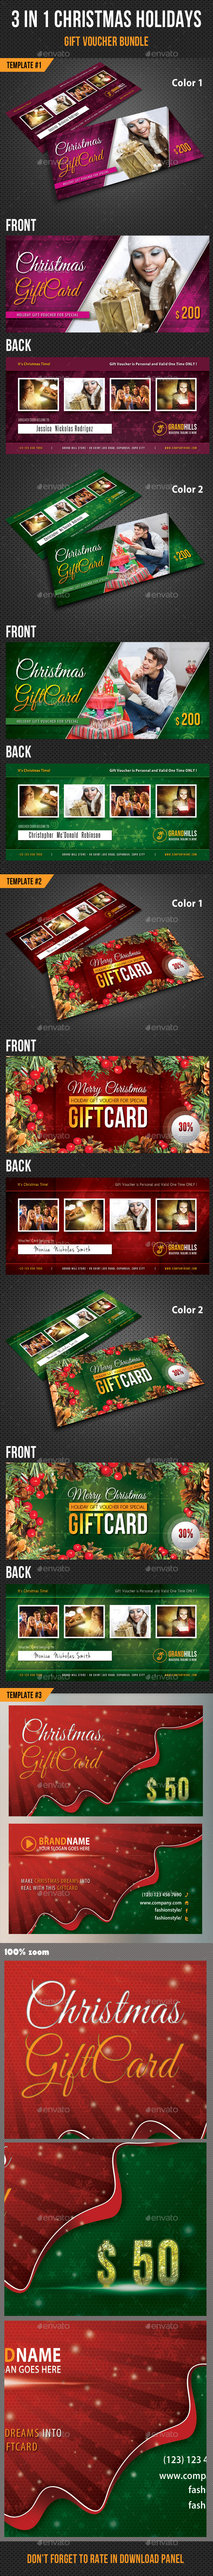 3 in 1 Christmas Holidays Gift Voucher Bundle - Cards & Invites Print Templates